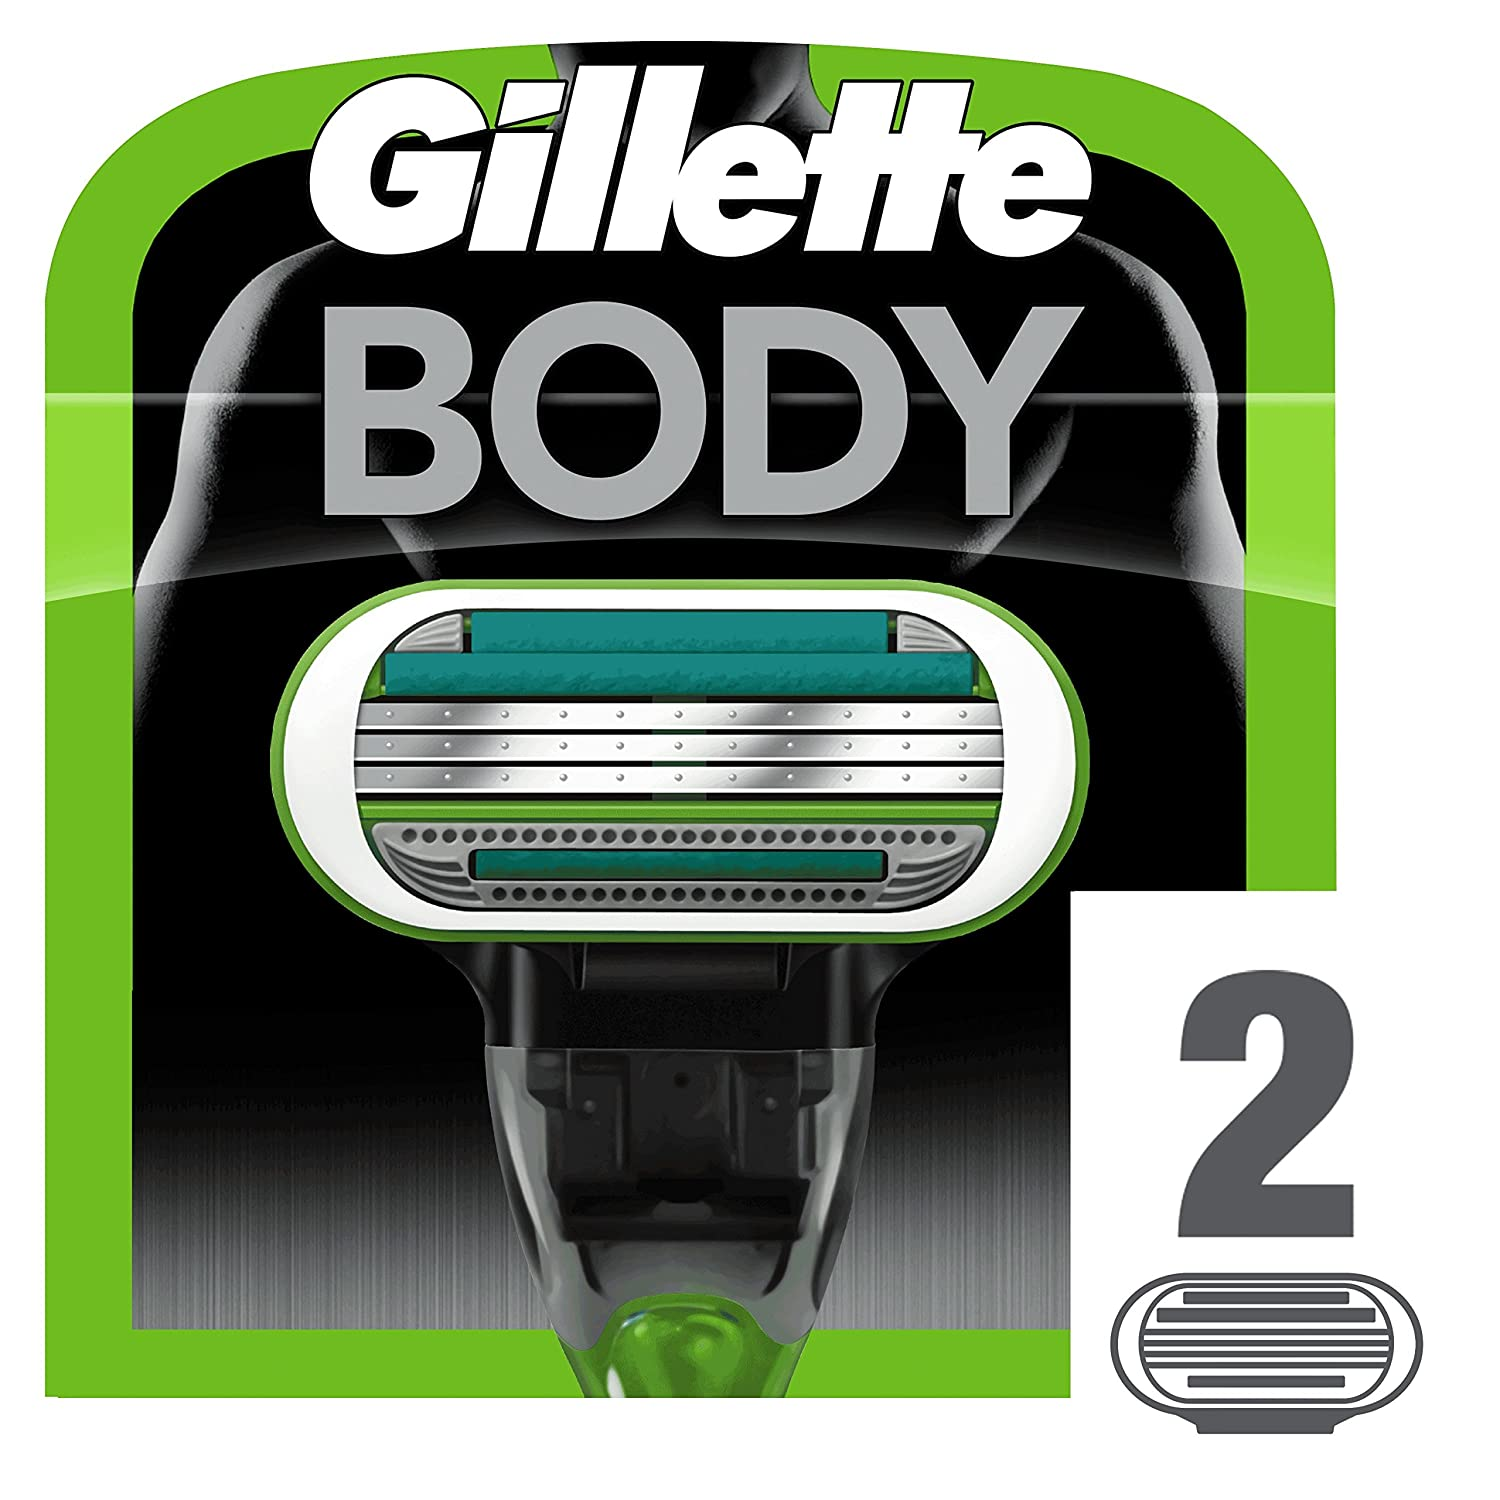 Gillette Body Razor Charger - Pack of 2 7702018413874